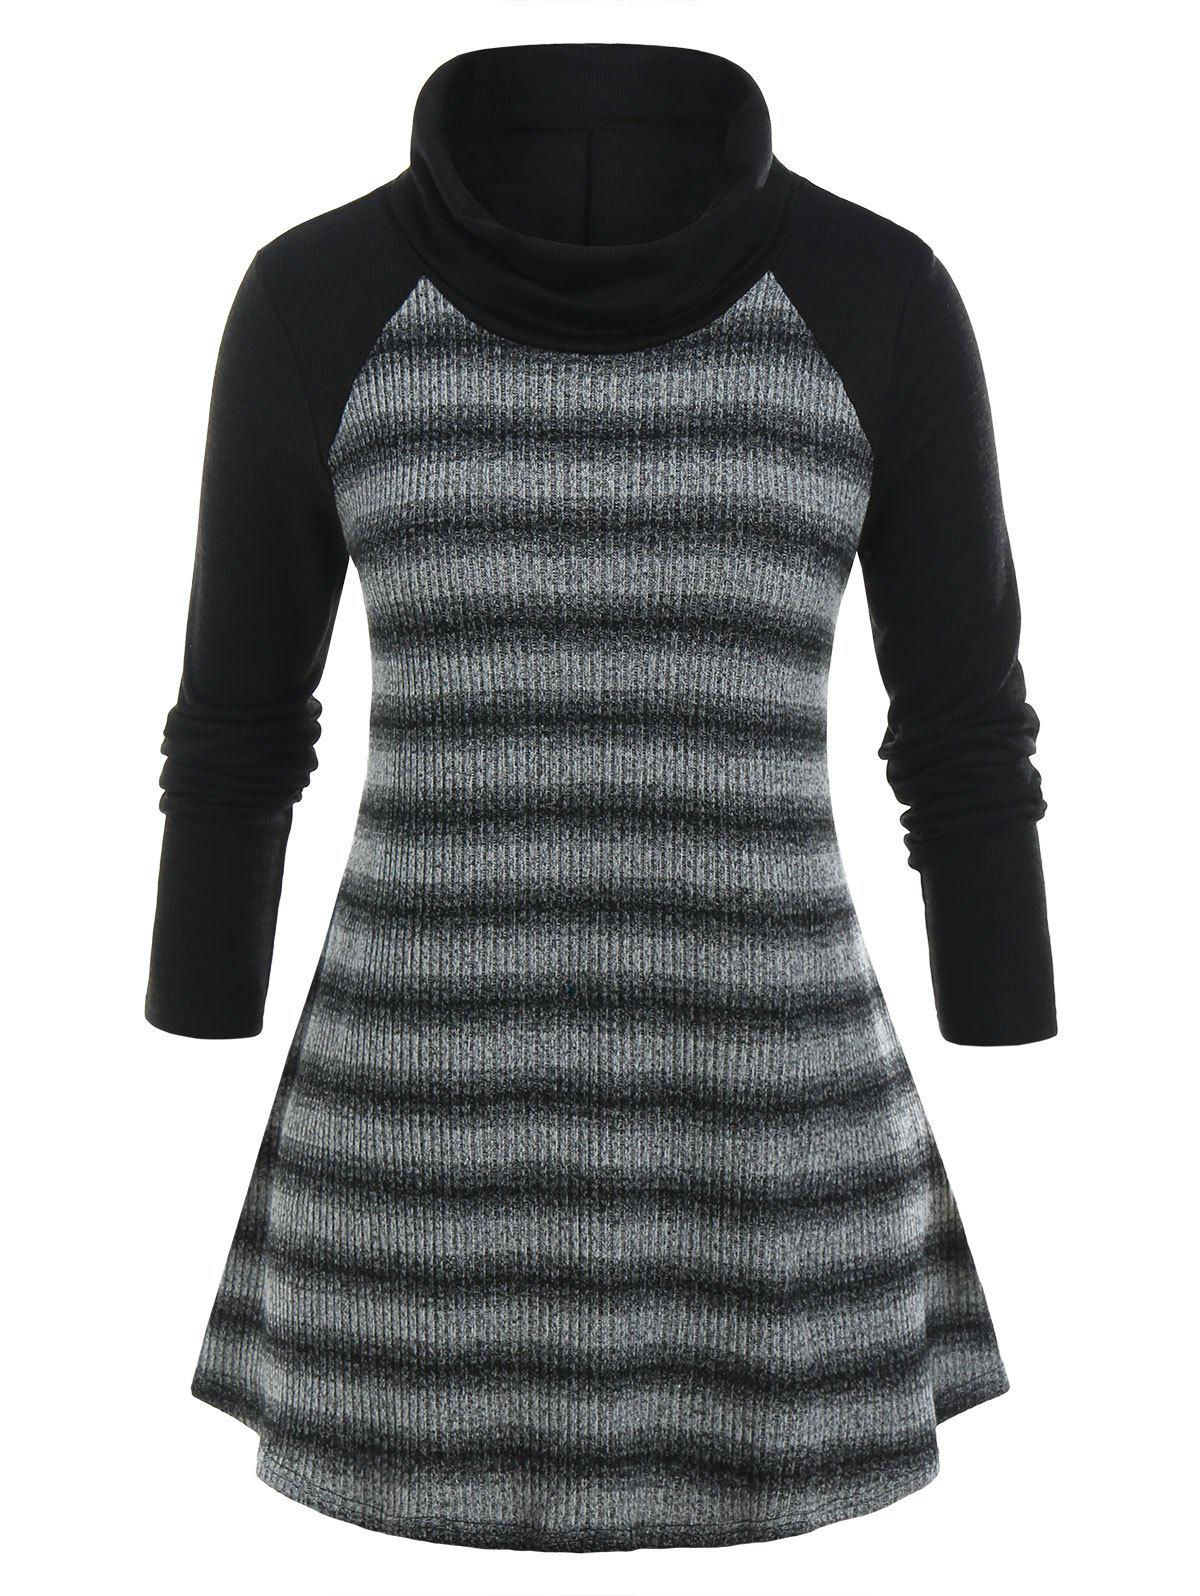 Plus Size Marled Striped Turtleneck Tunic Sweater - BLACK L